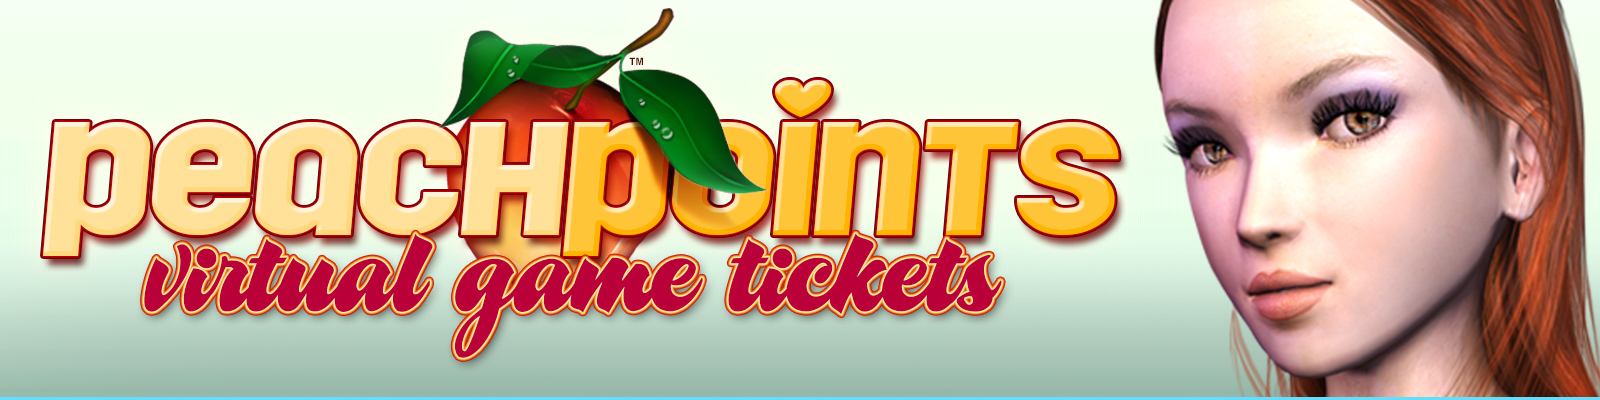 Peach Points : (5,000) Virtual Game Tickets